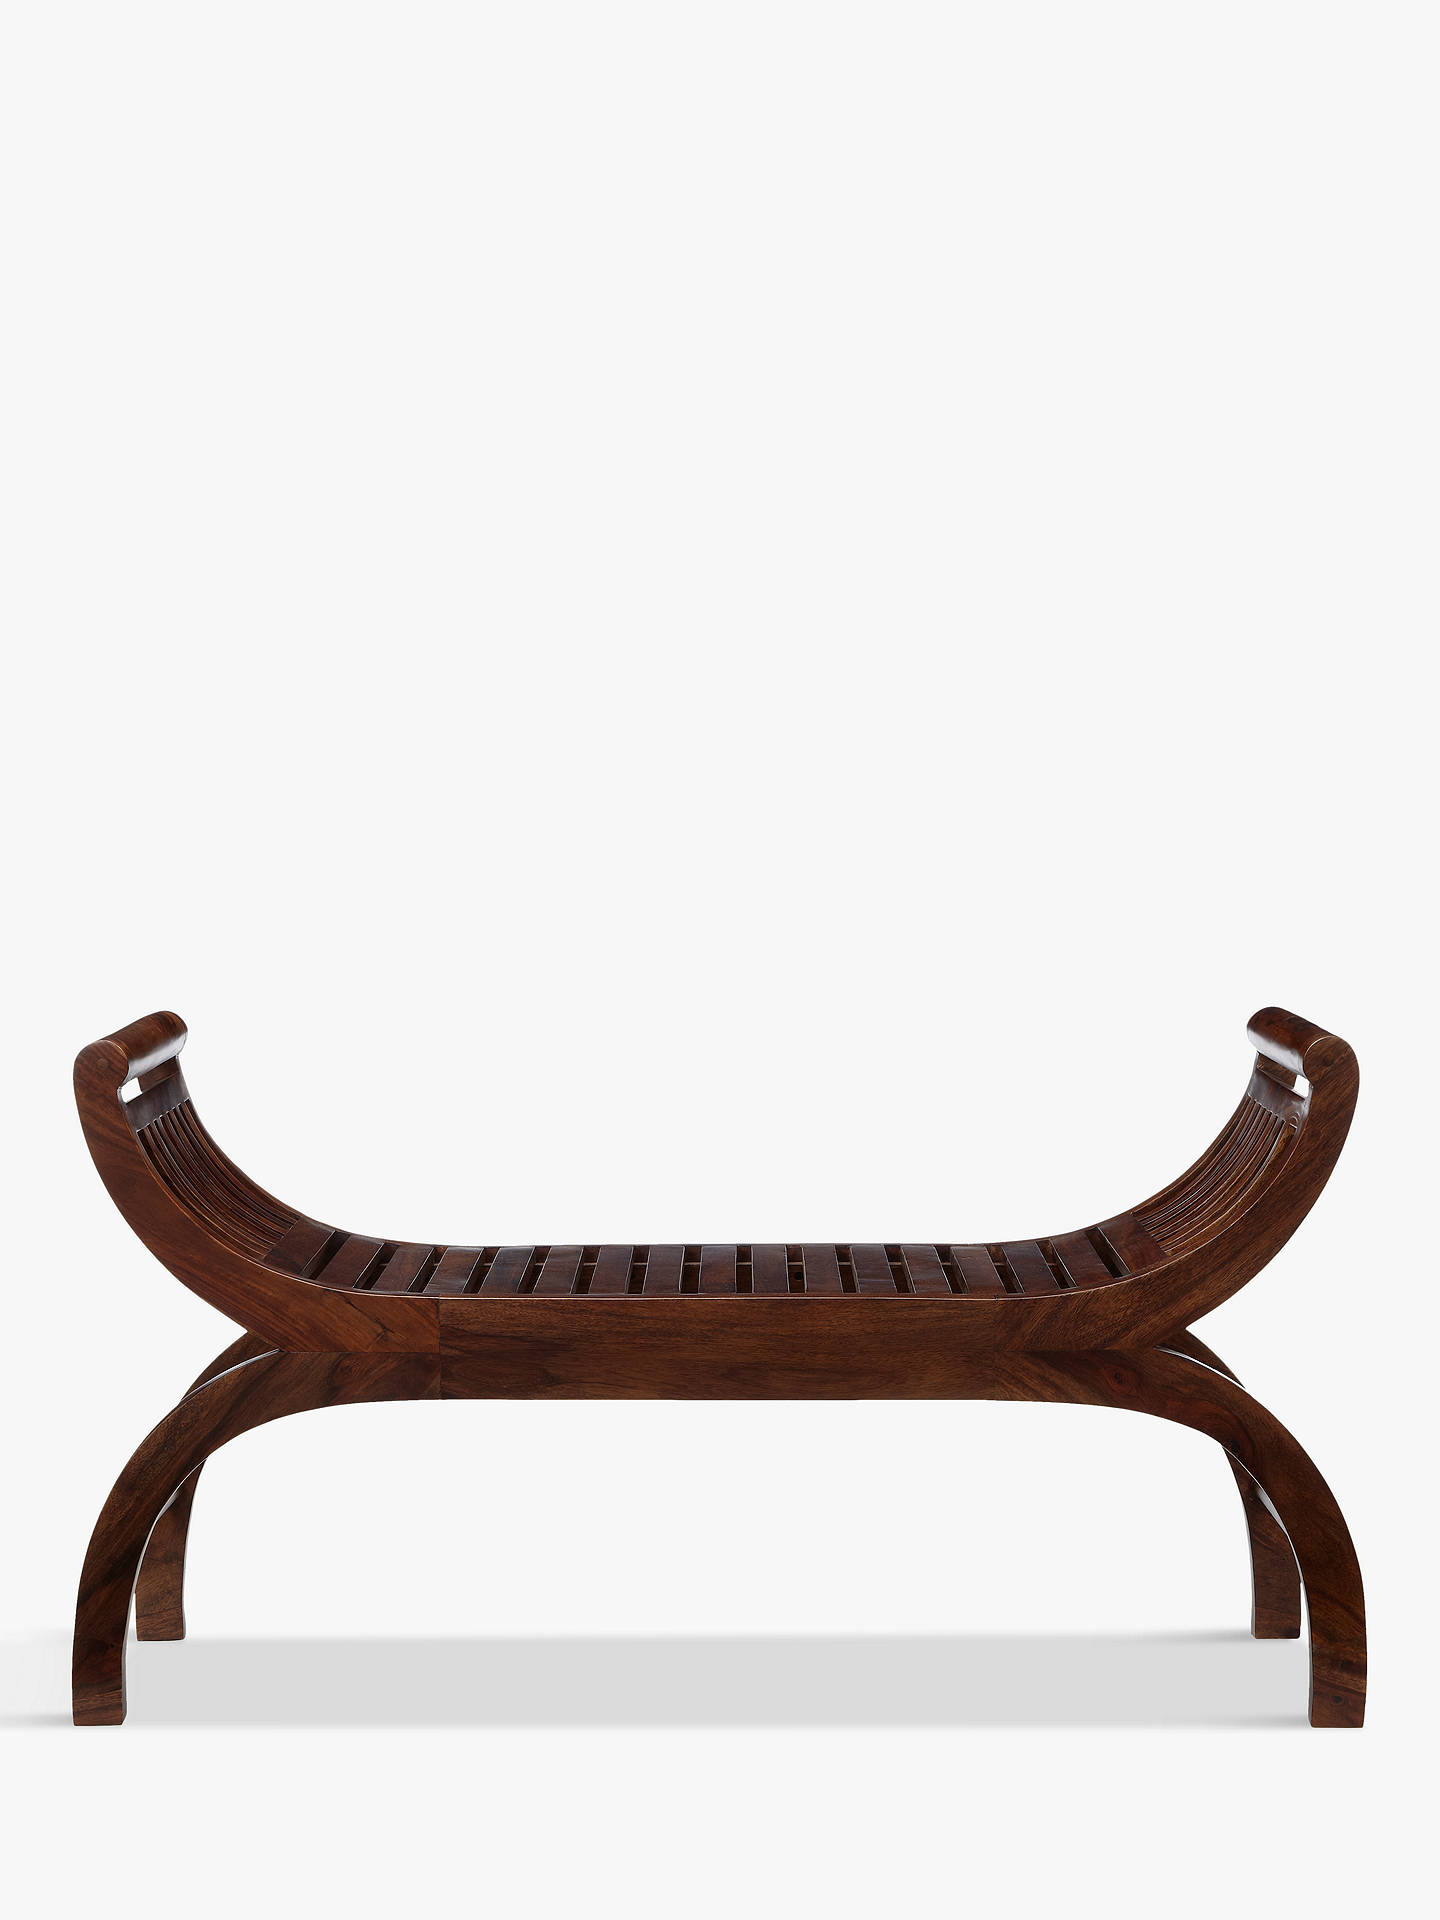 BuyJohn Lewis & Partners Maharani Curved 3-Seater Dining Bench, Dark Stain Online at johnlewis.com